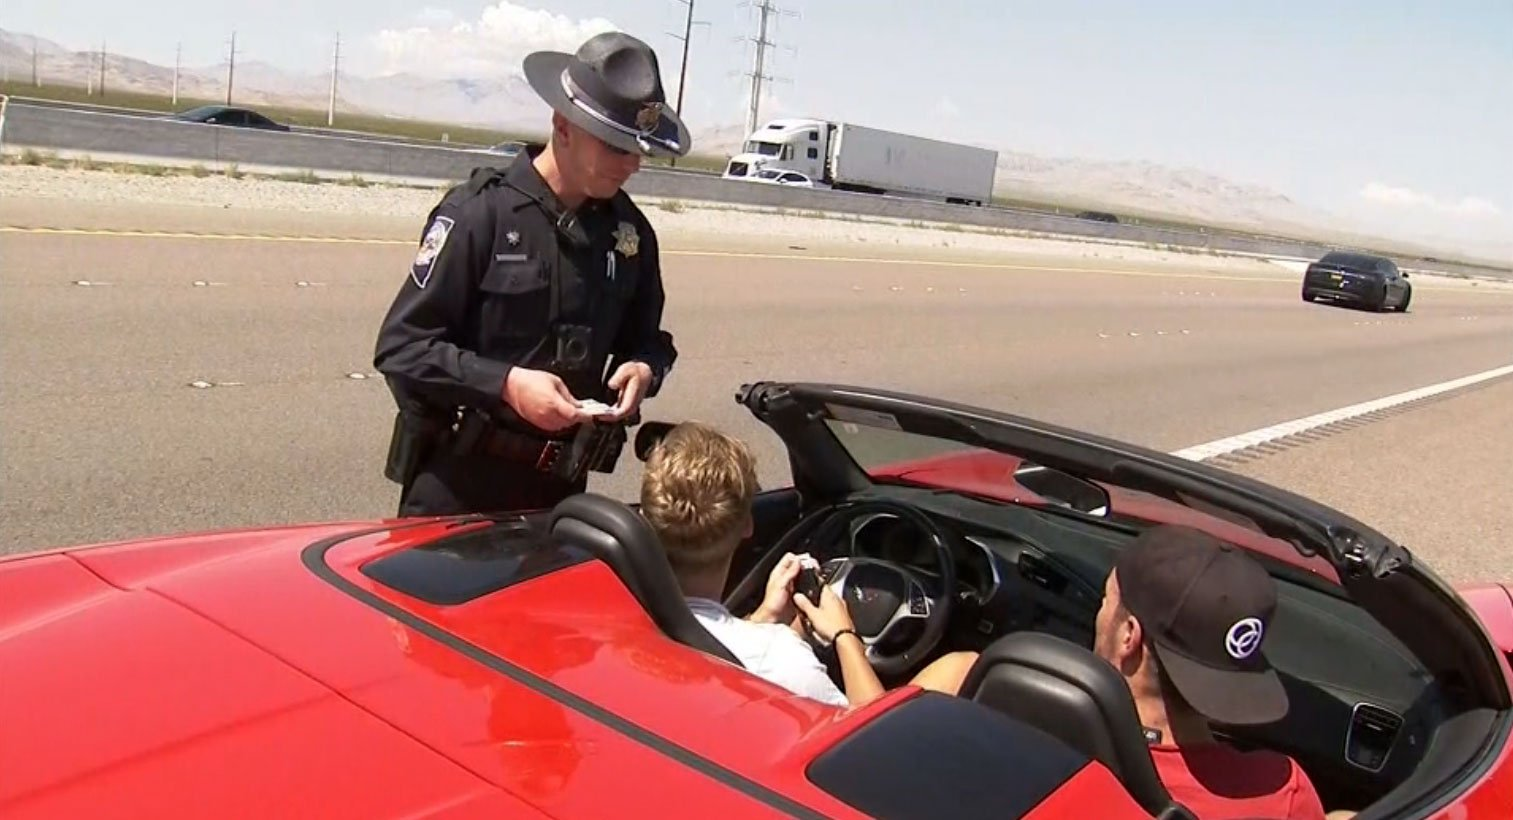 Nevada Highway Patrol pulled over a vehicle on Sept. 1, 2017. (Adam Herbets/FOX5)